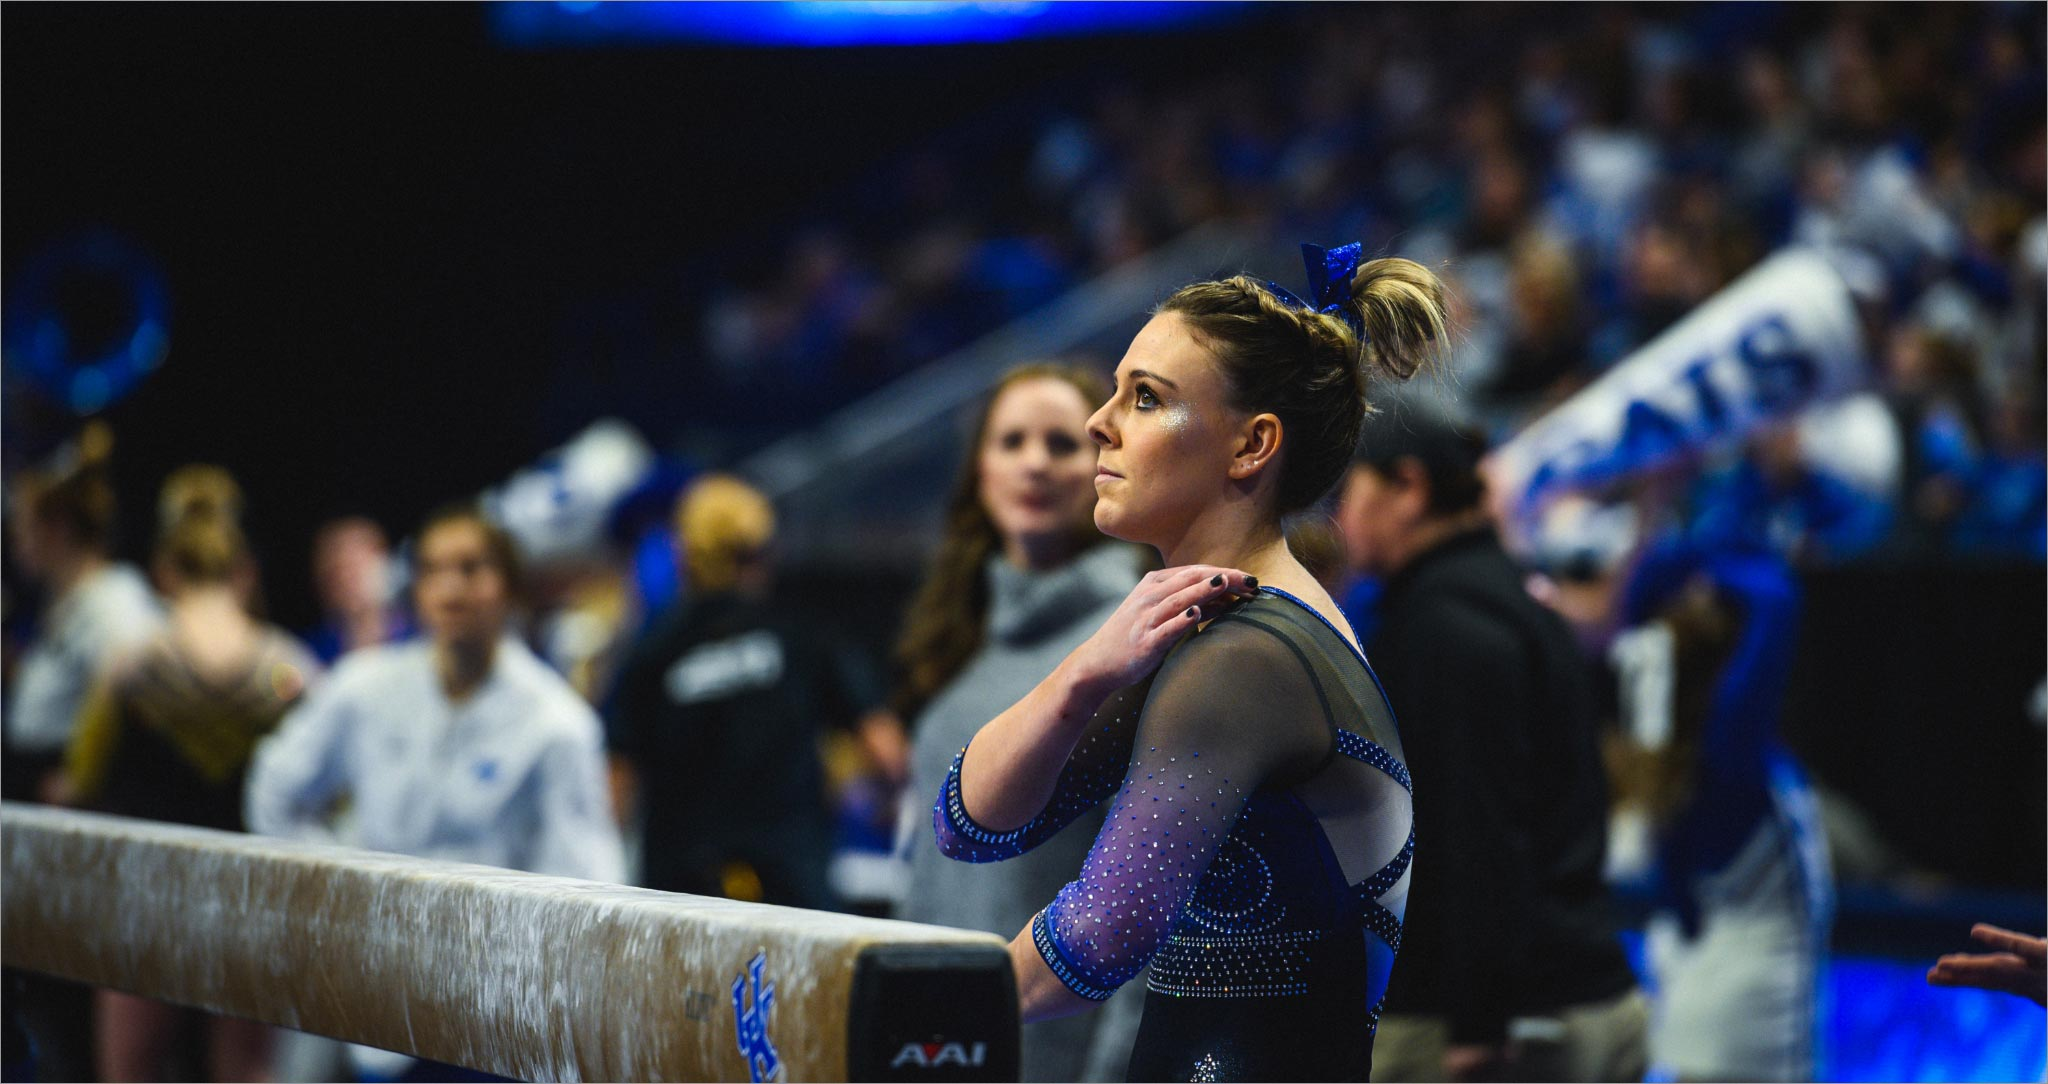 Mac, wearing a sparkly blue, black and white leotard, looks up at something outside of the frame. Her brown hair is up in a bun and has a blue ribbon in it. We can see a blurry crowd behind her.